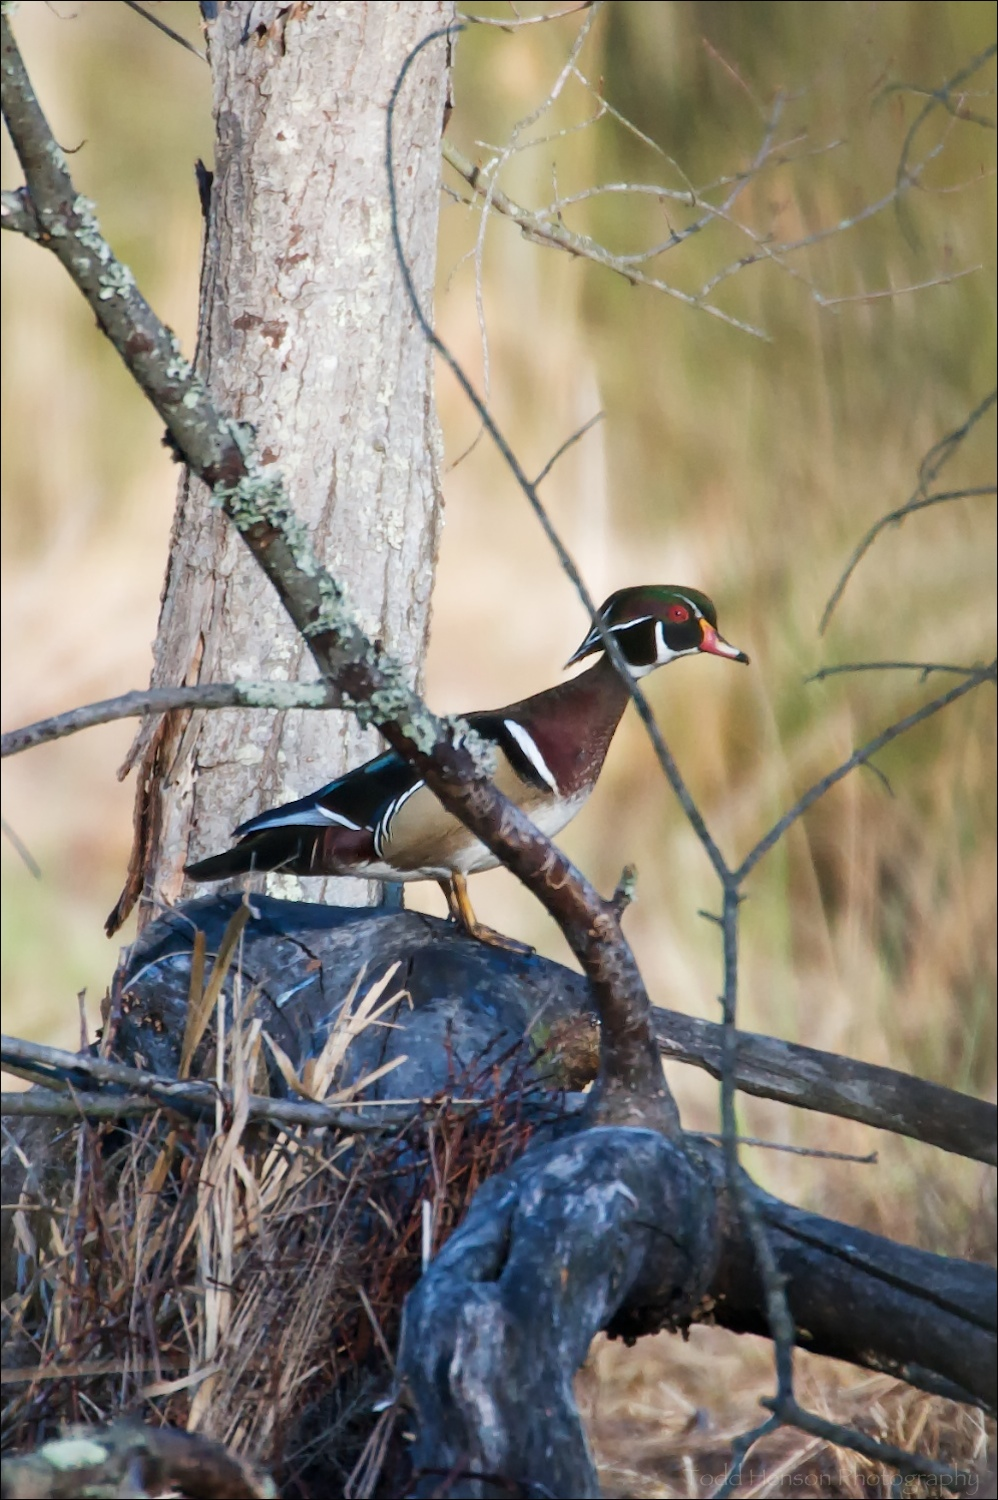 Male Wood Duck near the ground watching me from behind branches.